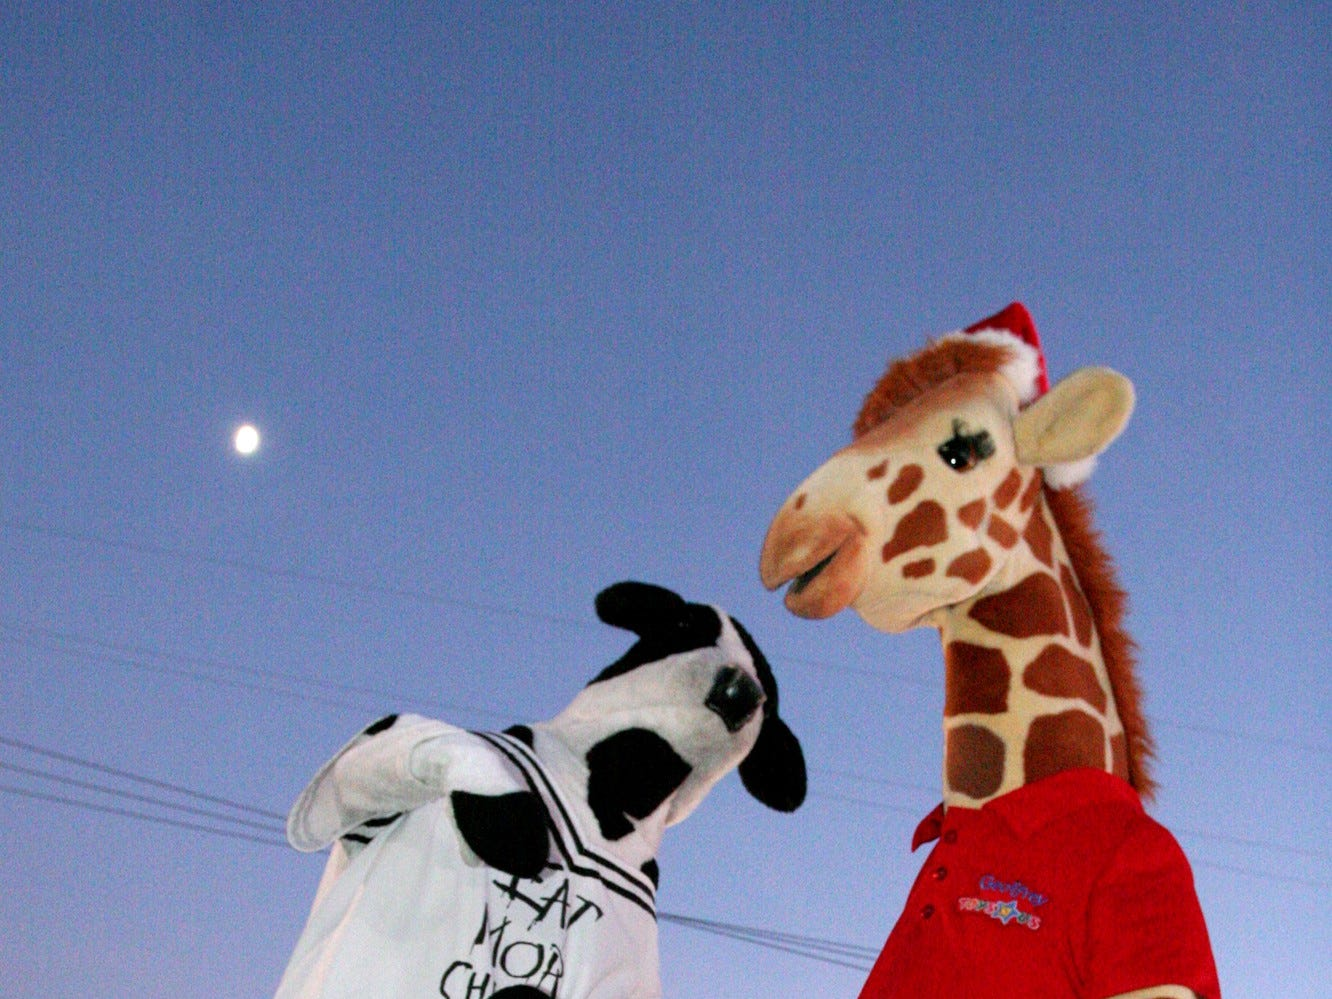 Jeffrey from Toys R' Us and The Cow from Chick-Fil-A dance under the moonlight at the West Town Mall Santa debut Nov. 15.